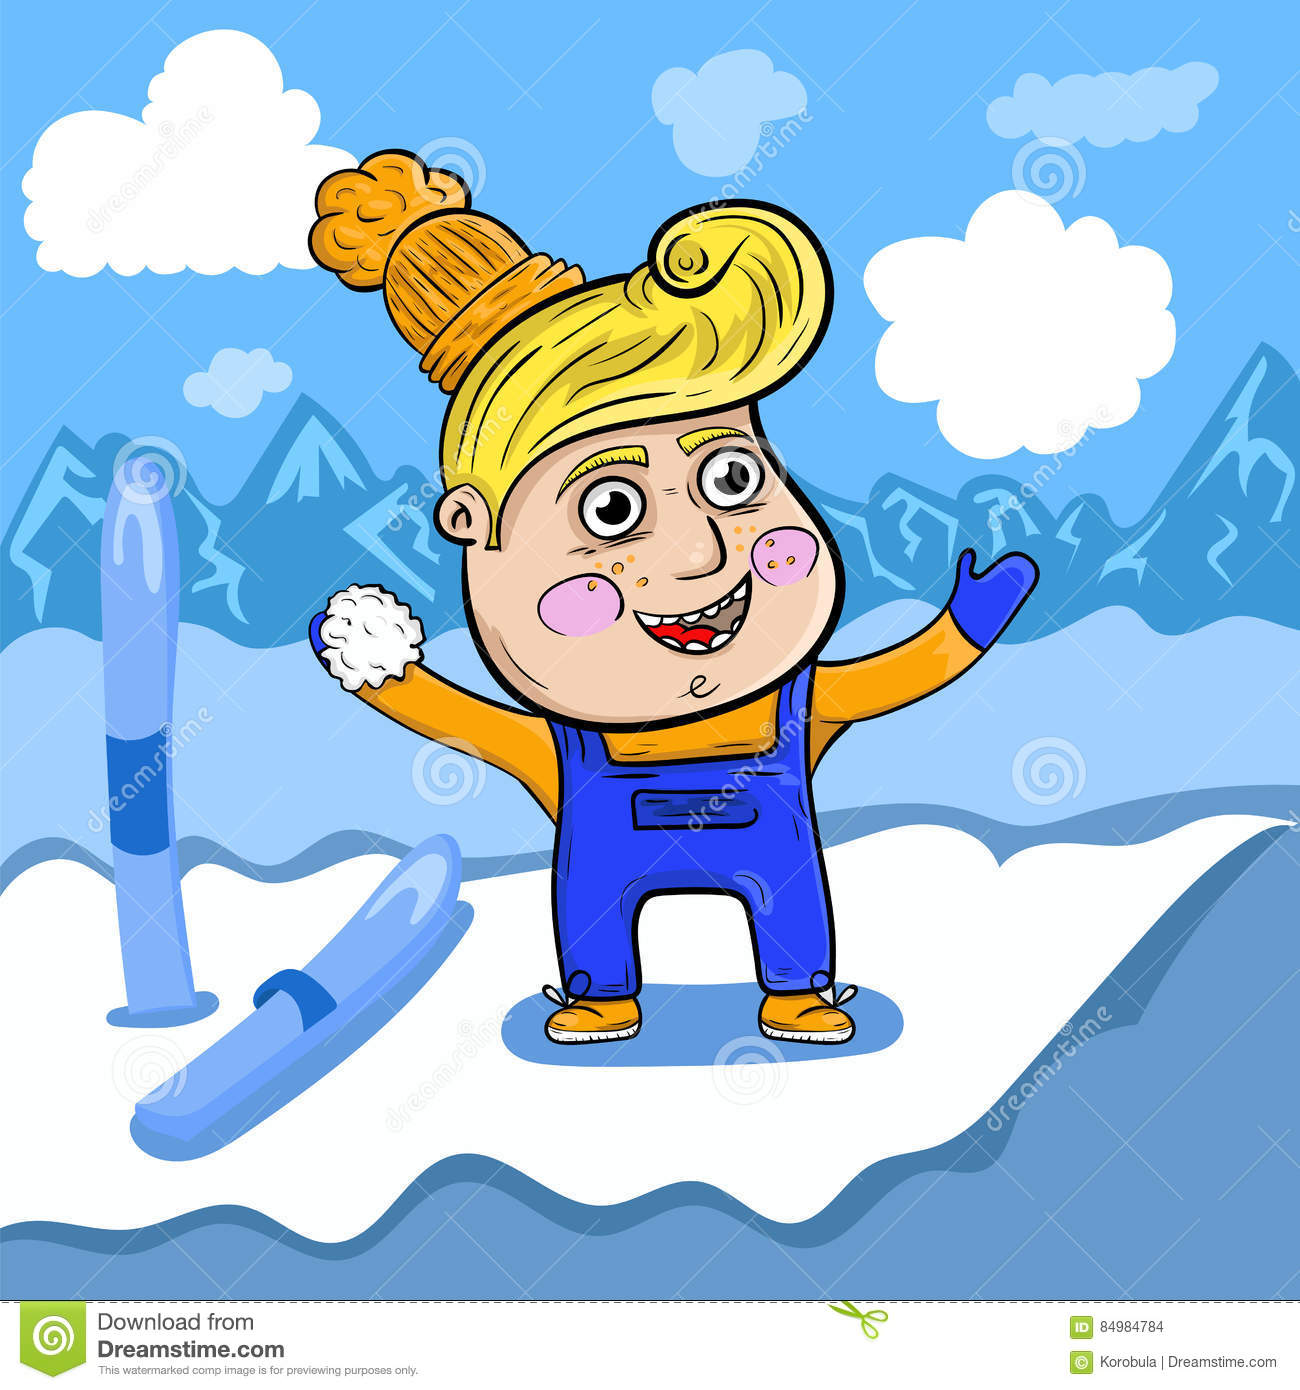 Cartoon boy playing in the snow high in the mountains.